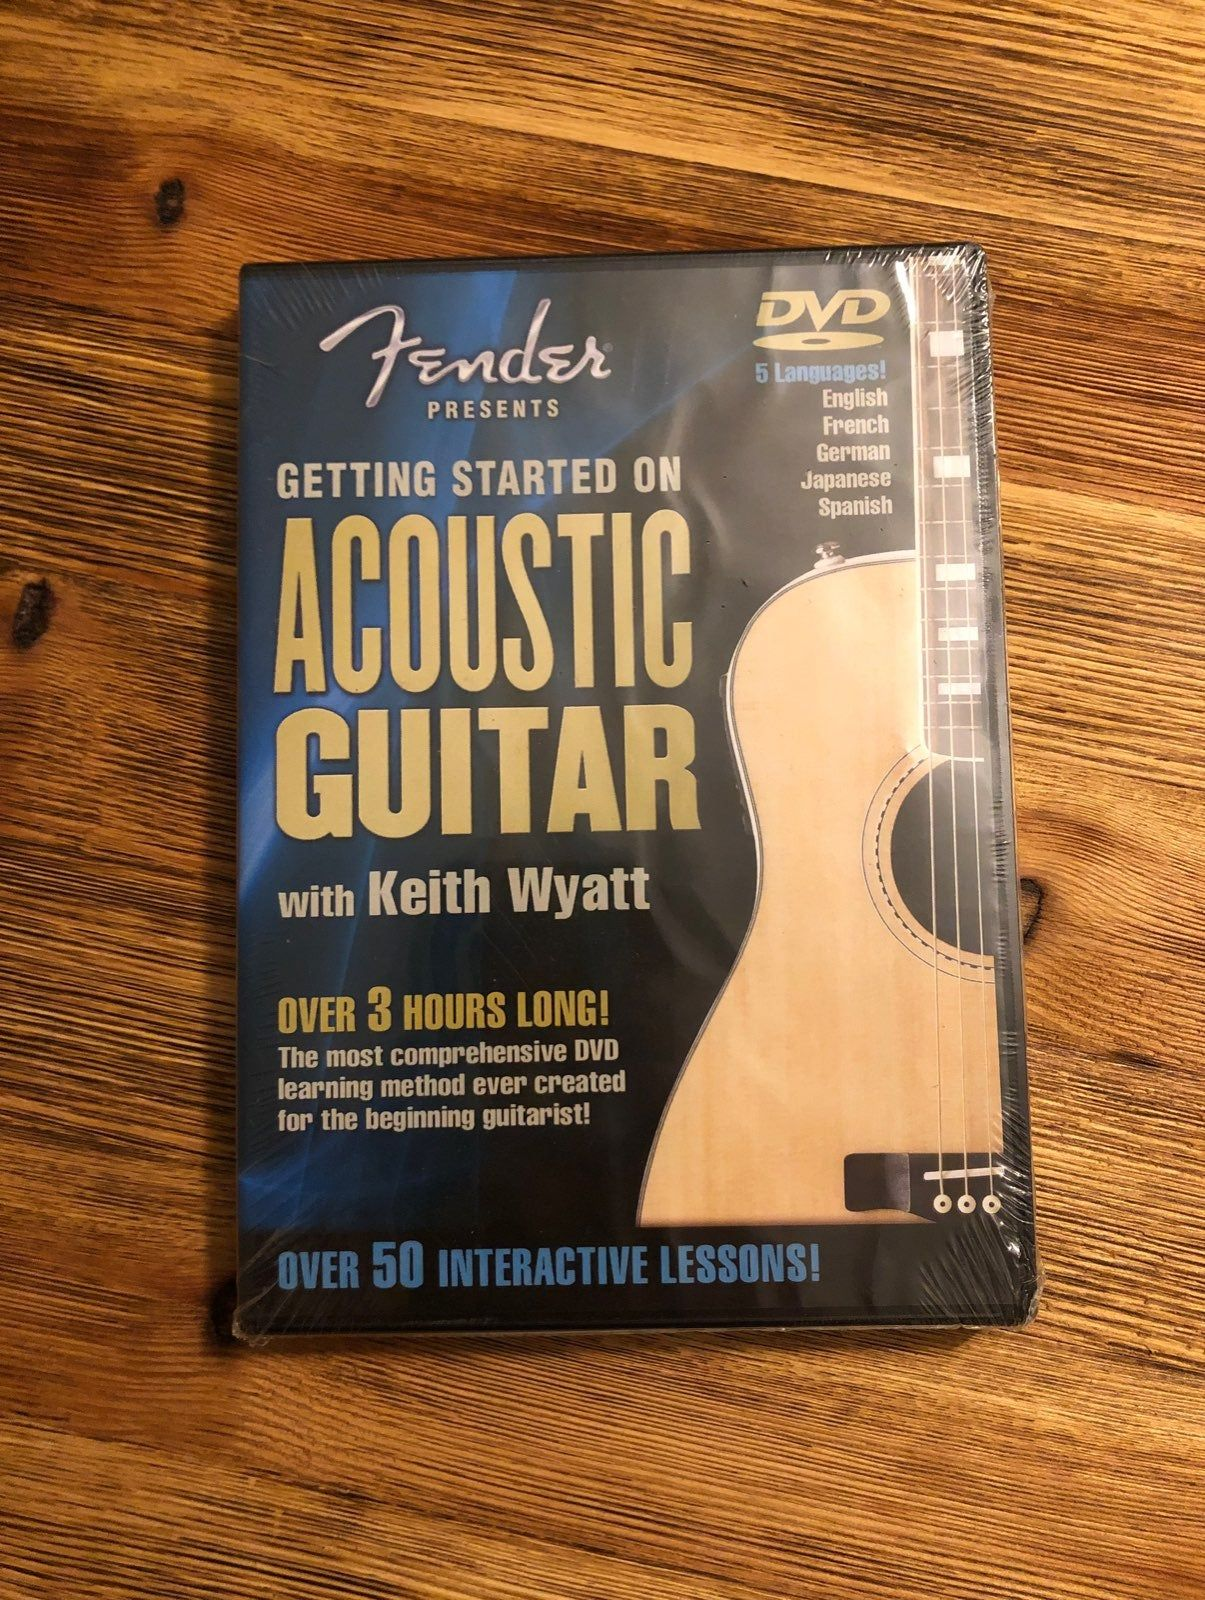 Brand New Never Opened Fender Acoustic Guitar Lessons Dvd With Keith Wyatt Over 3 Hours Long Over 50 Le Fender Acoustic Guitar Guitar Lessons Fender Acoustic